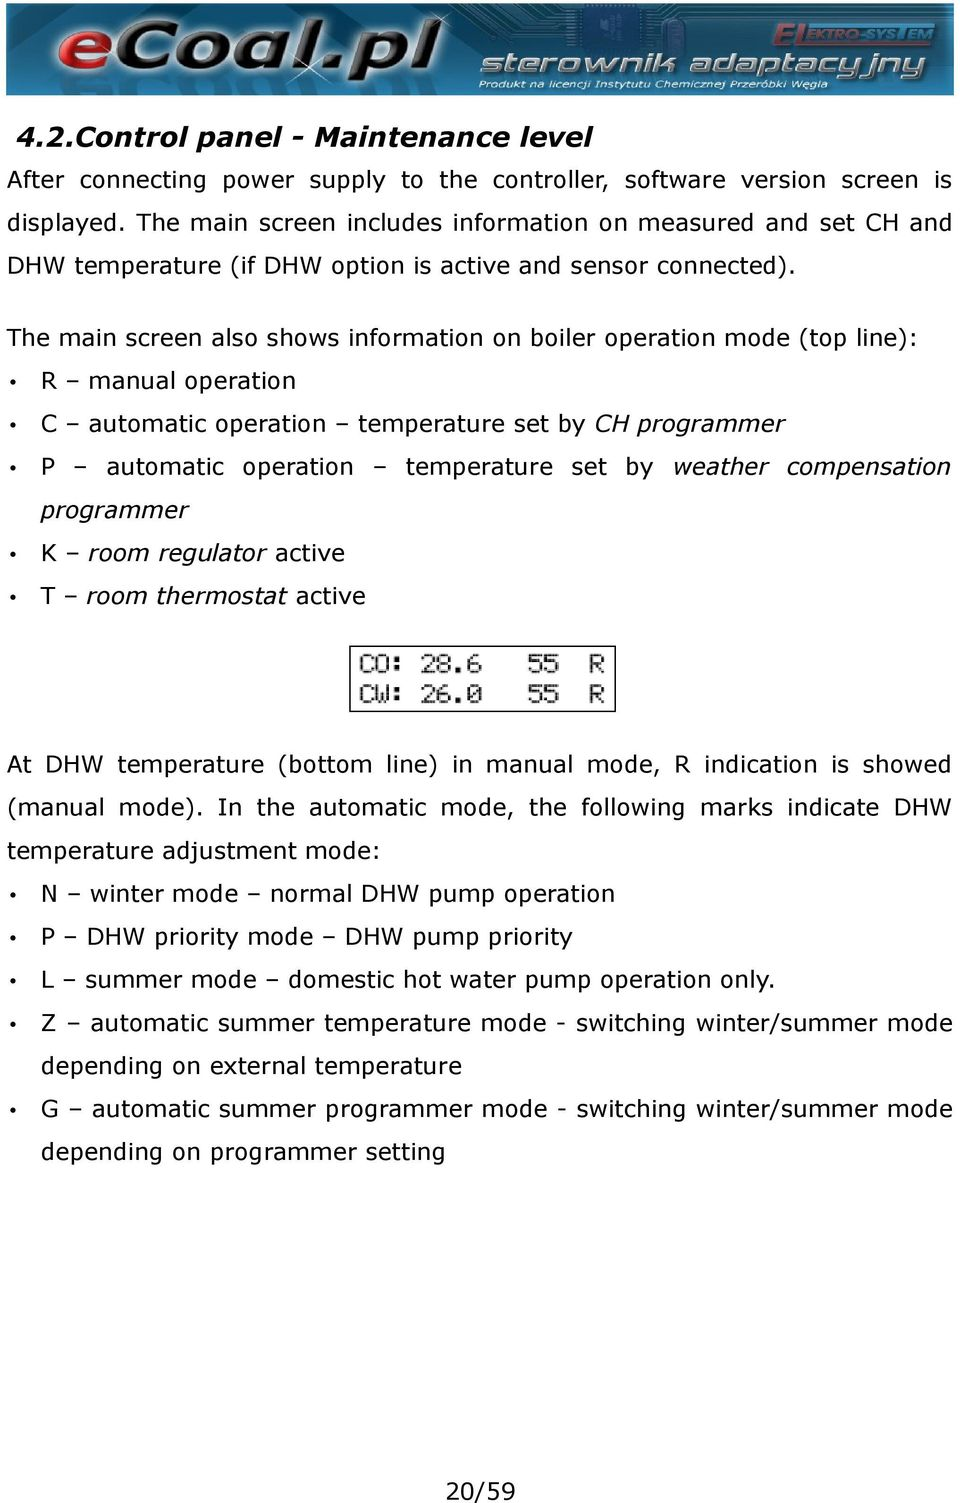 The main screen also shows information on boiler operation mode (top line): R manual operation C automatic operation temperature set by CH programmer P automatic operation temperature set by weather